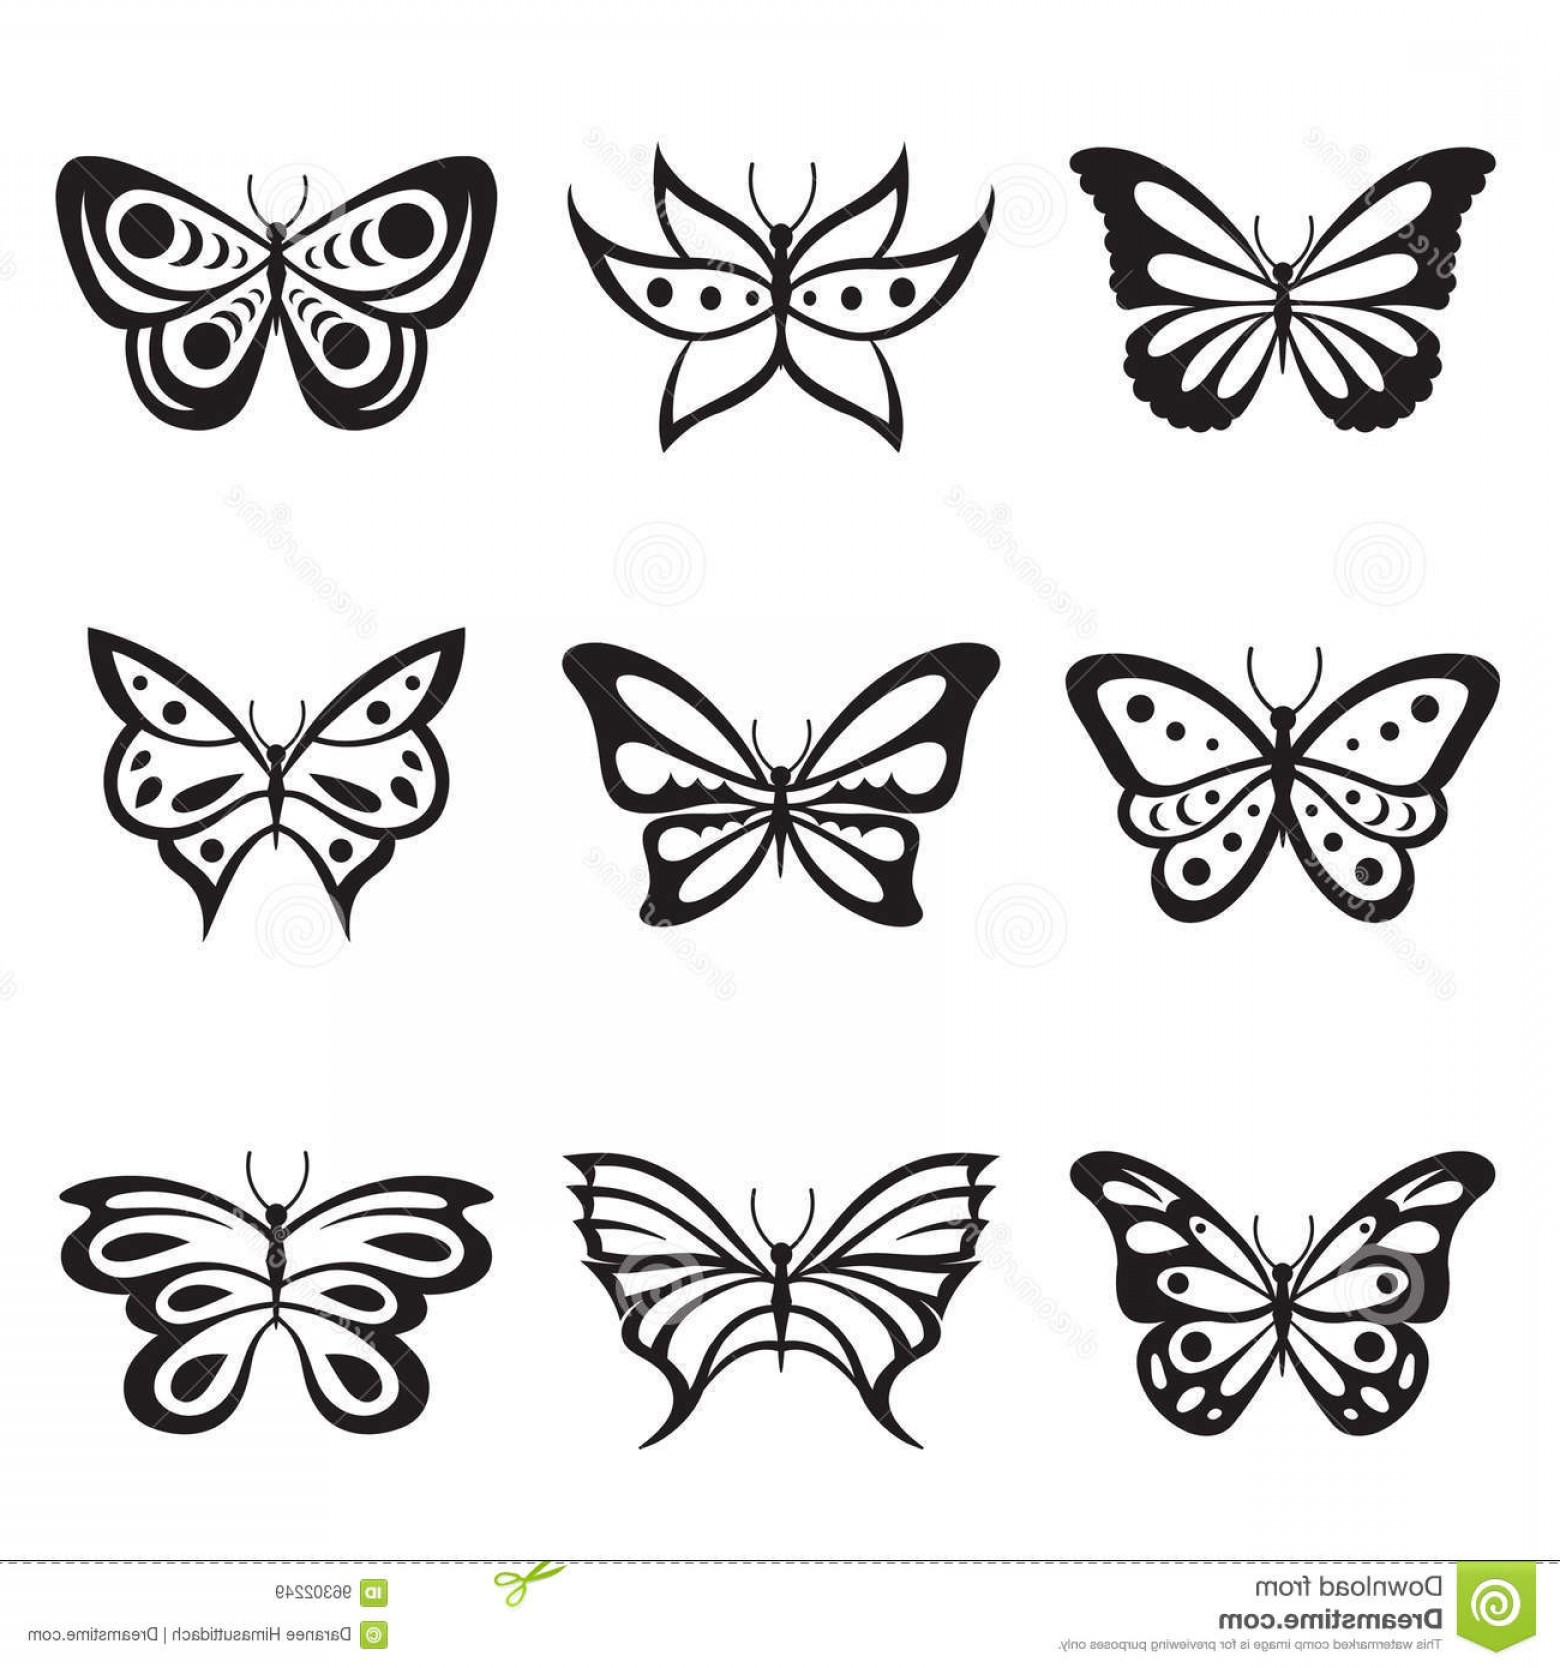 Mariposa Vector: Stock Illustration Black Animal Insect Butterfly Tattoo Silhouettes Icon Vector Design Image